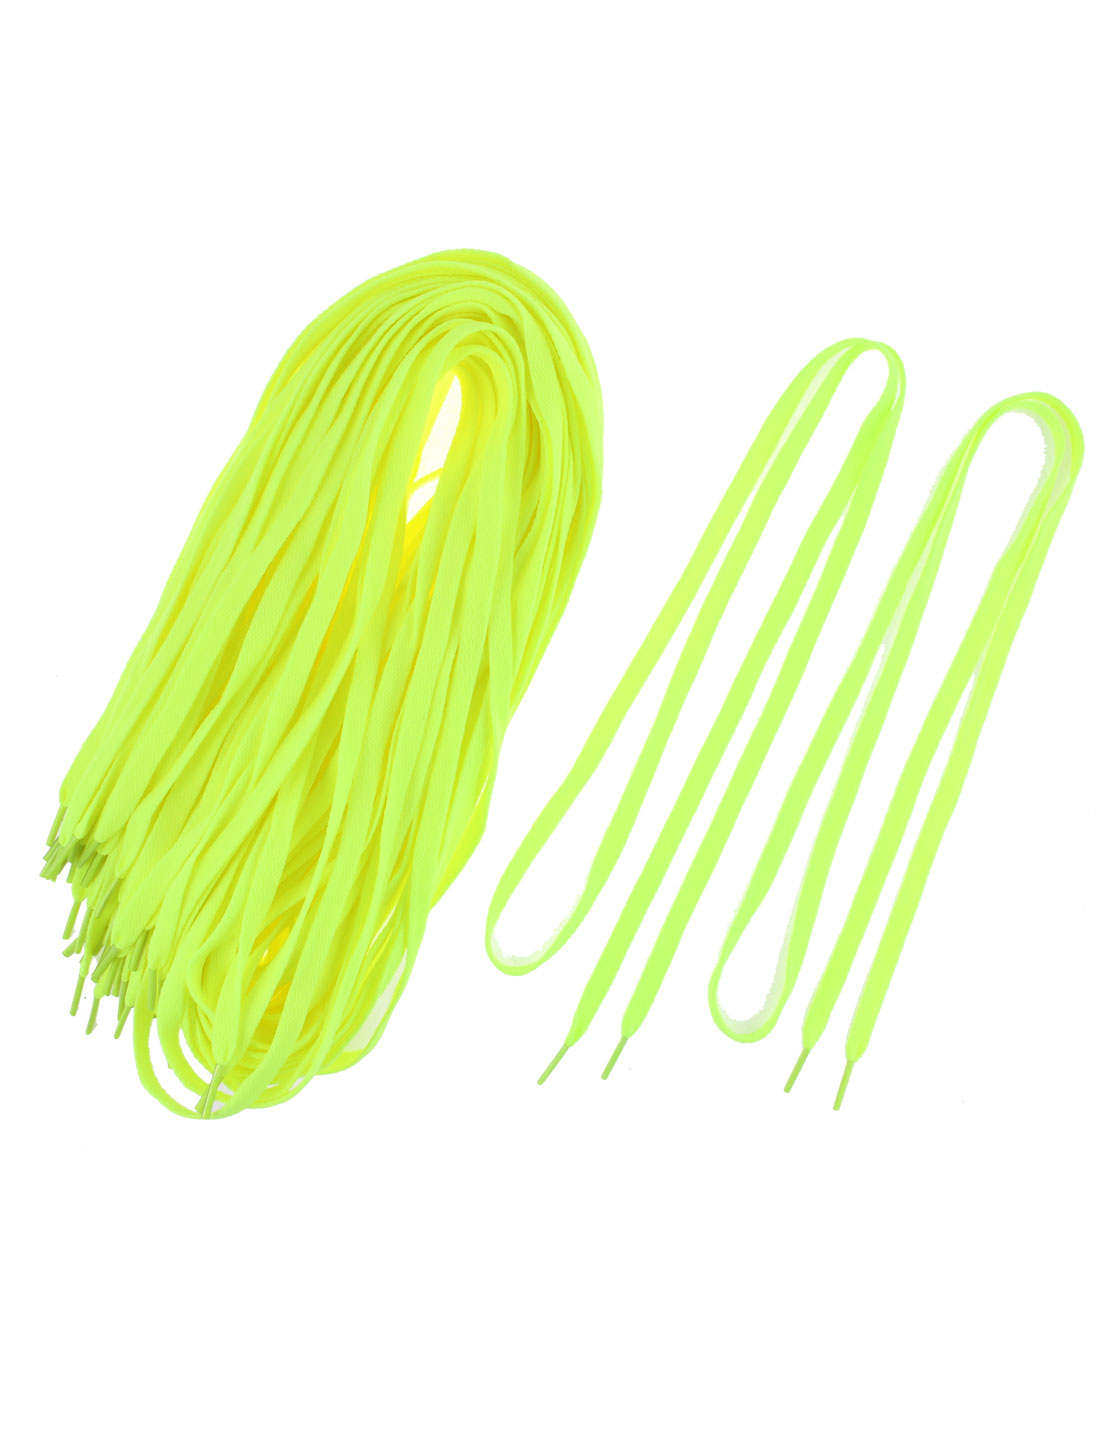 Casual Sport Shoes Sneaker Flat Bootlaces Shoelaces Strings Fluorescent Yellow 20 Pairs